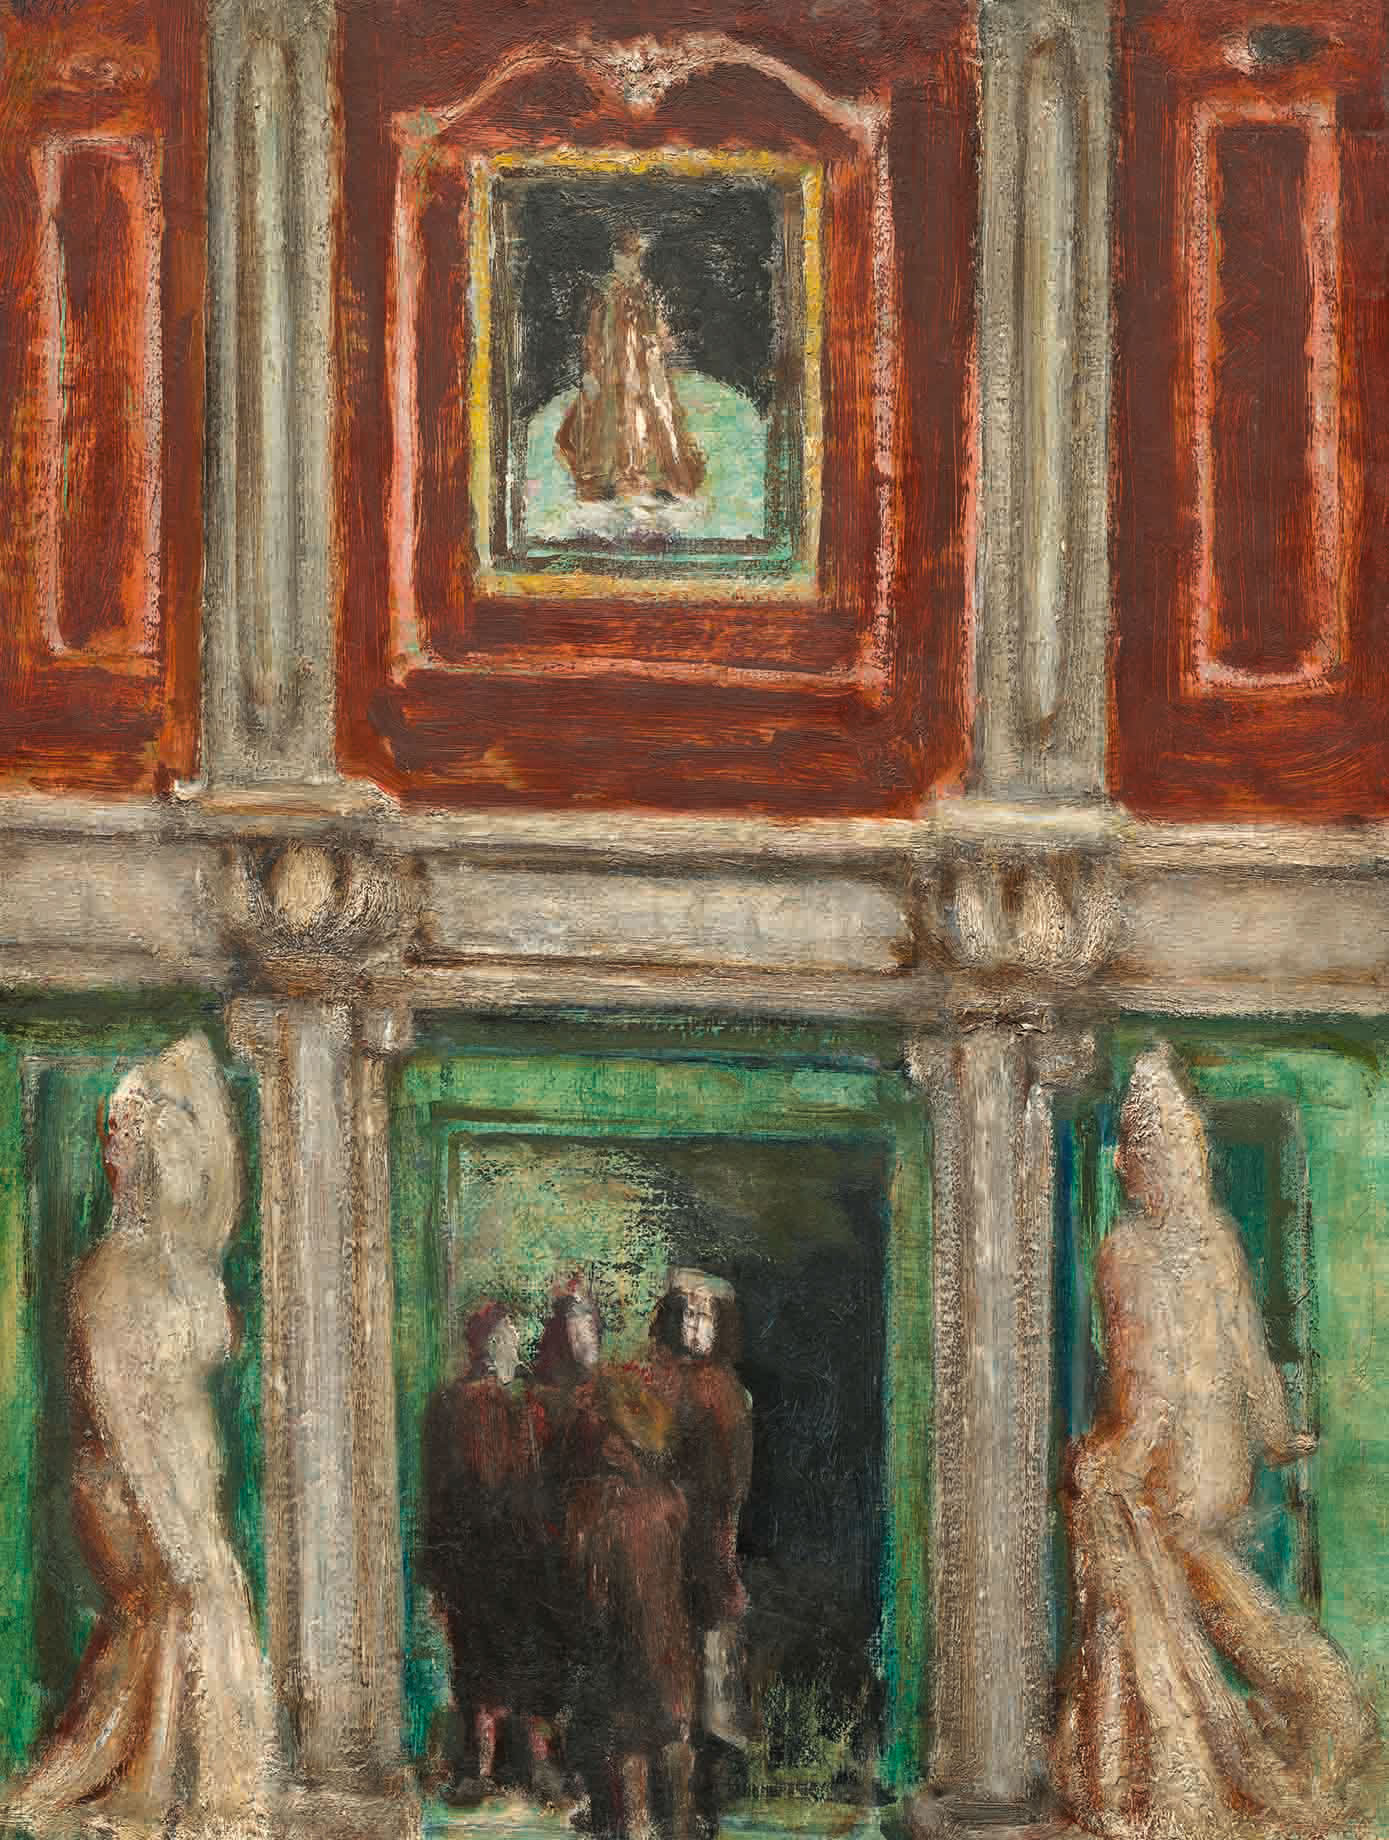 Mark Rothko: Interior, 1936; click image to enlarge